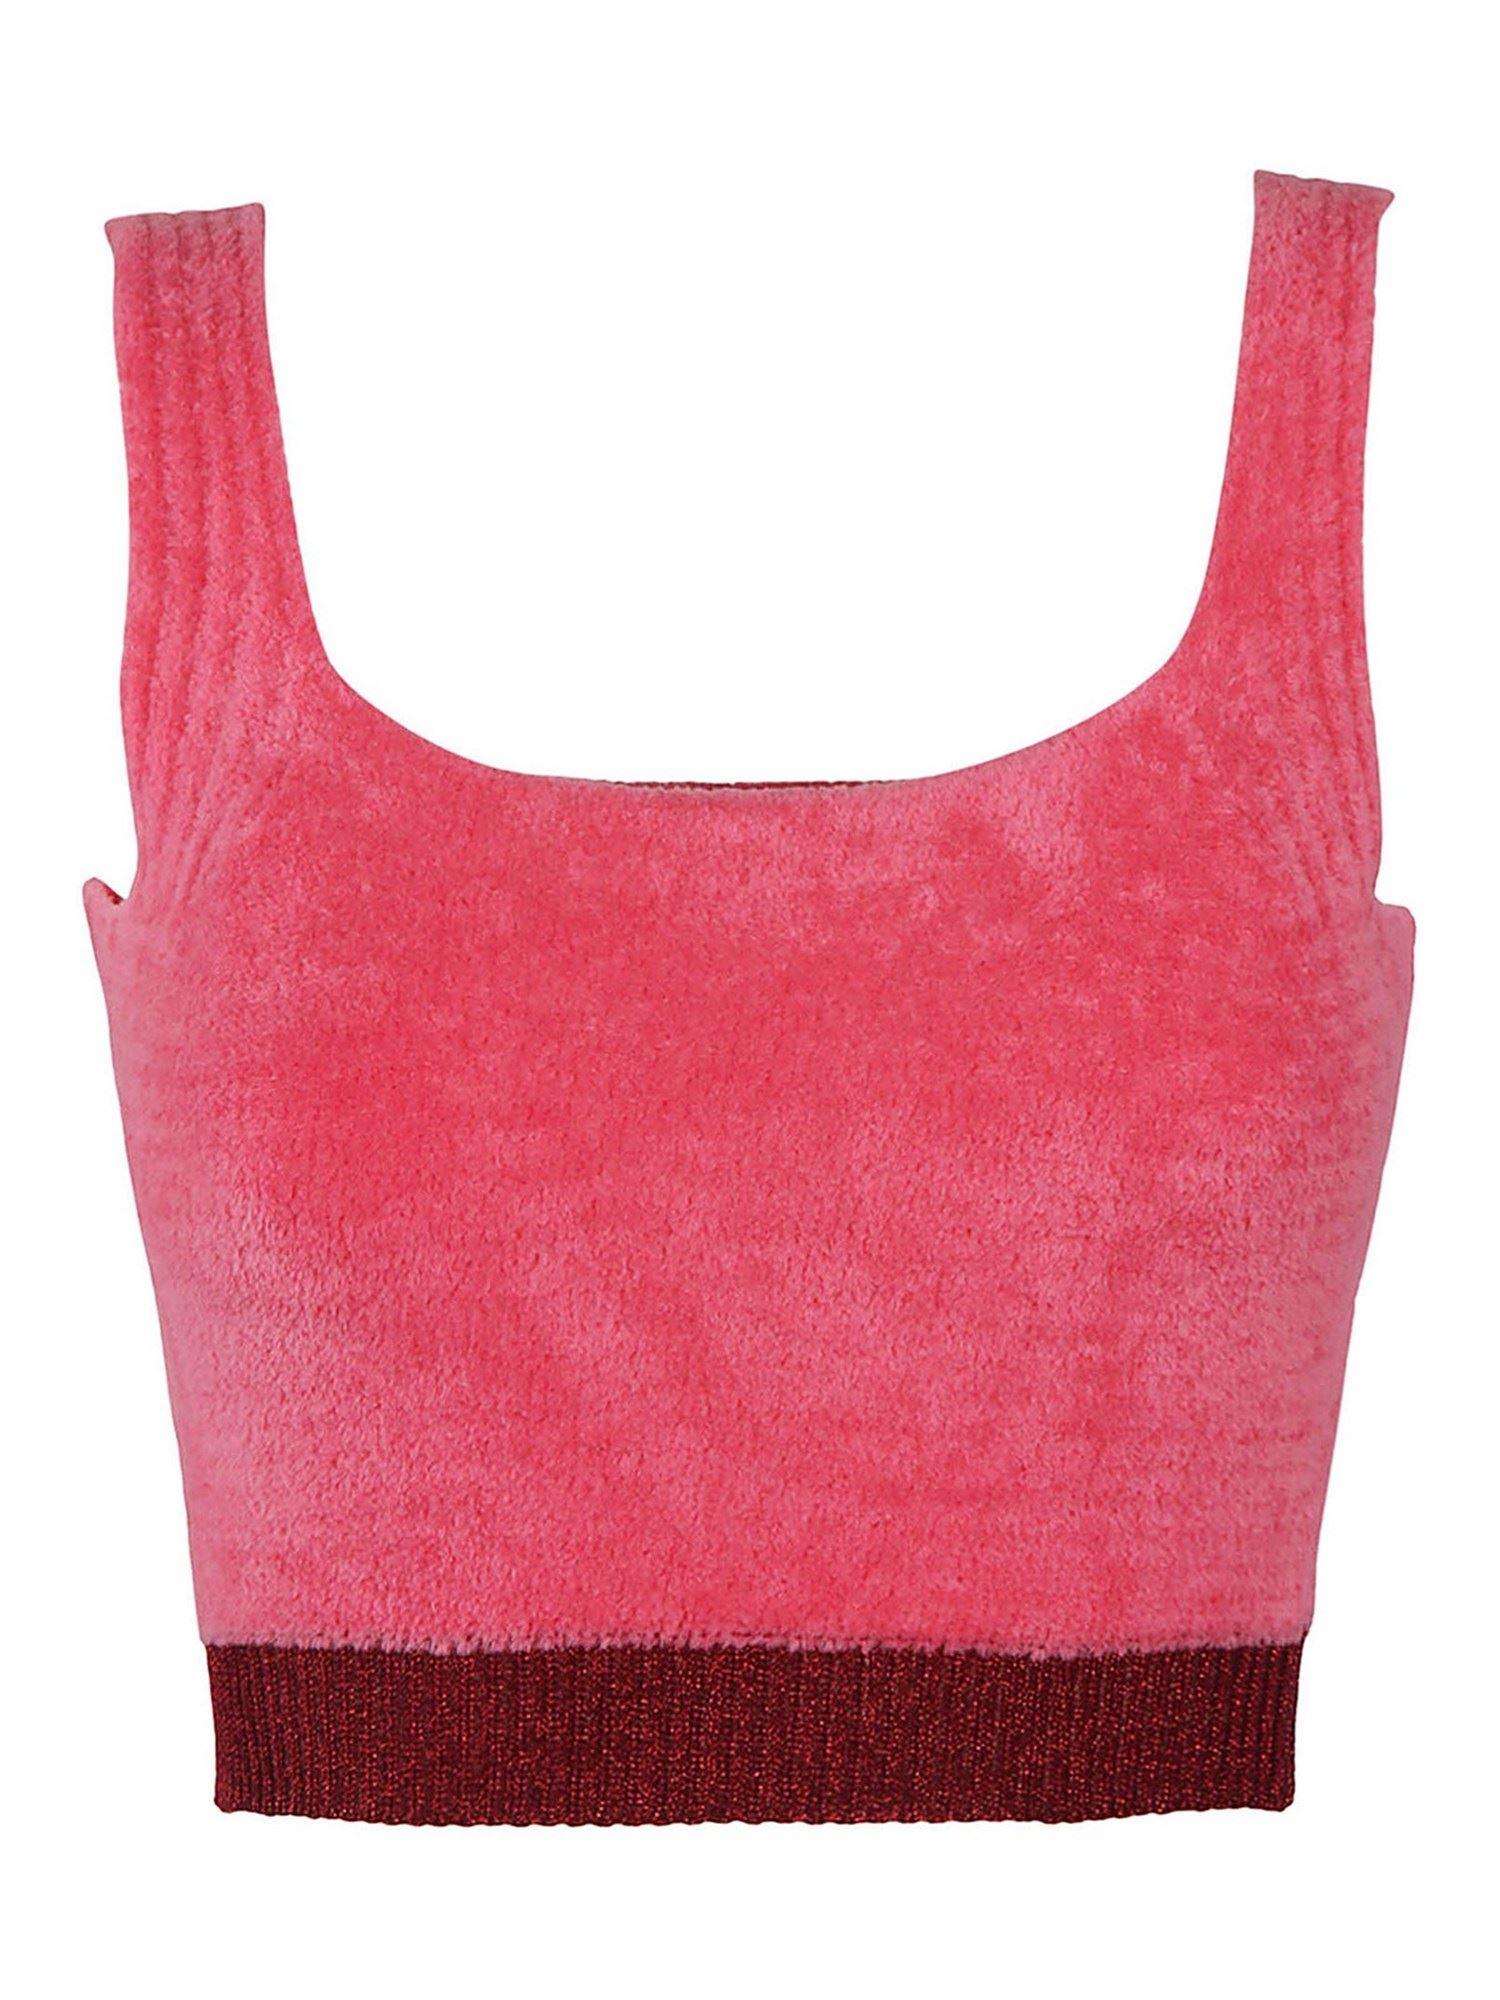 Pinko Cottons PINKO GIOCATORE TOP IN ROSA DUBARRY COLOR